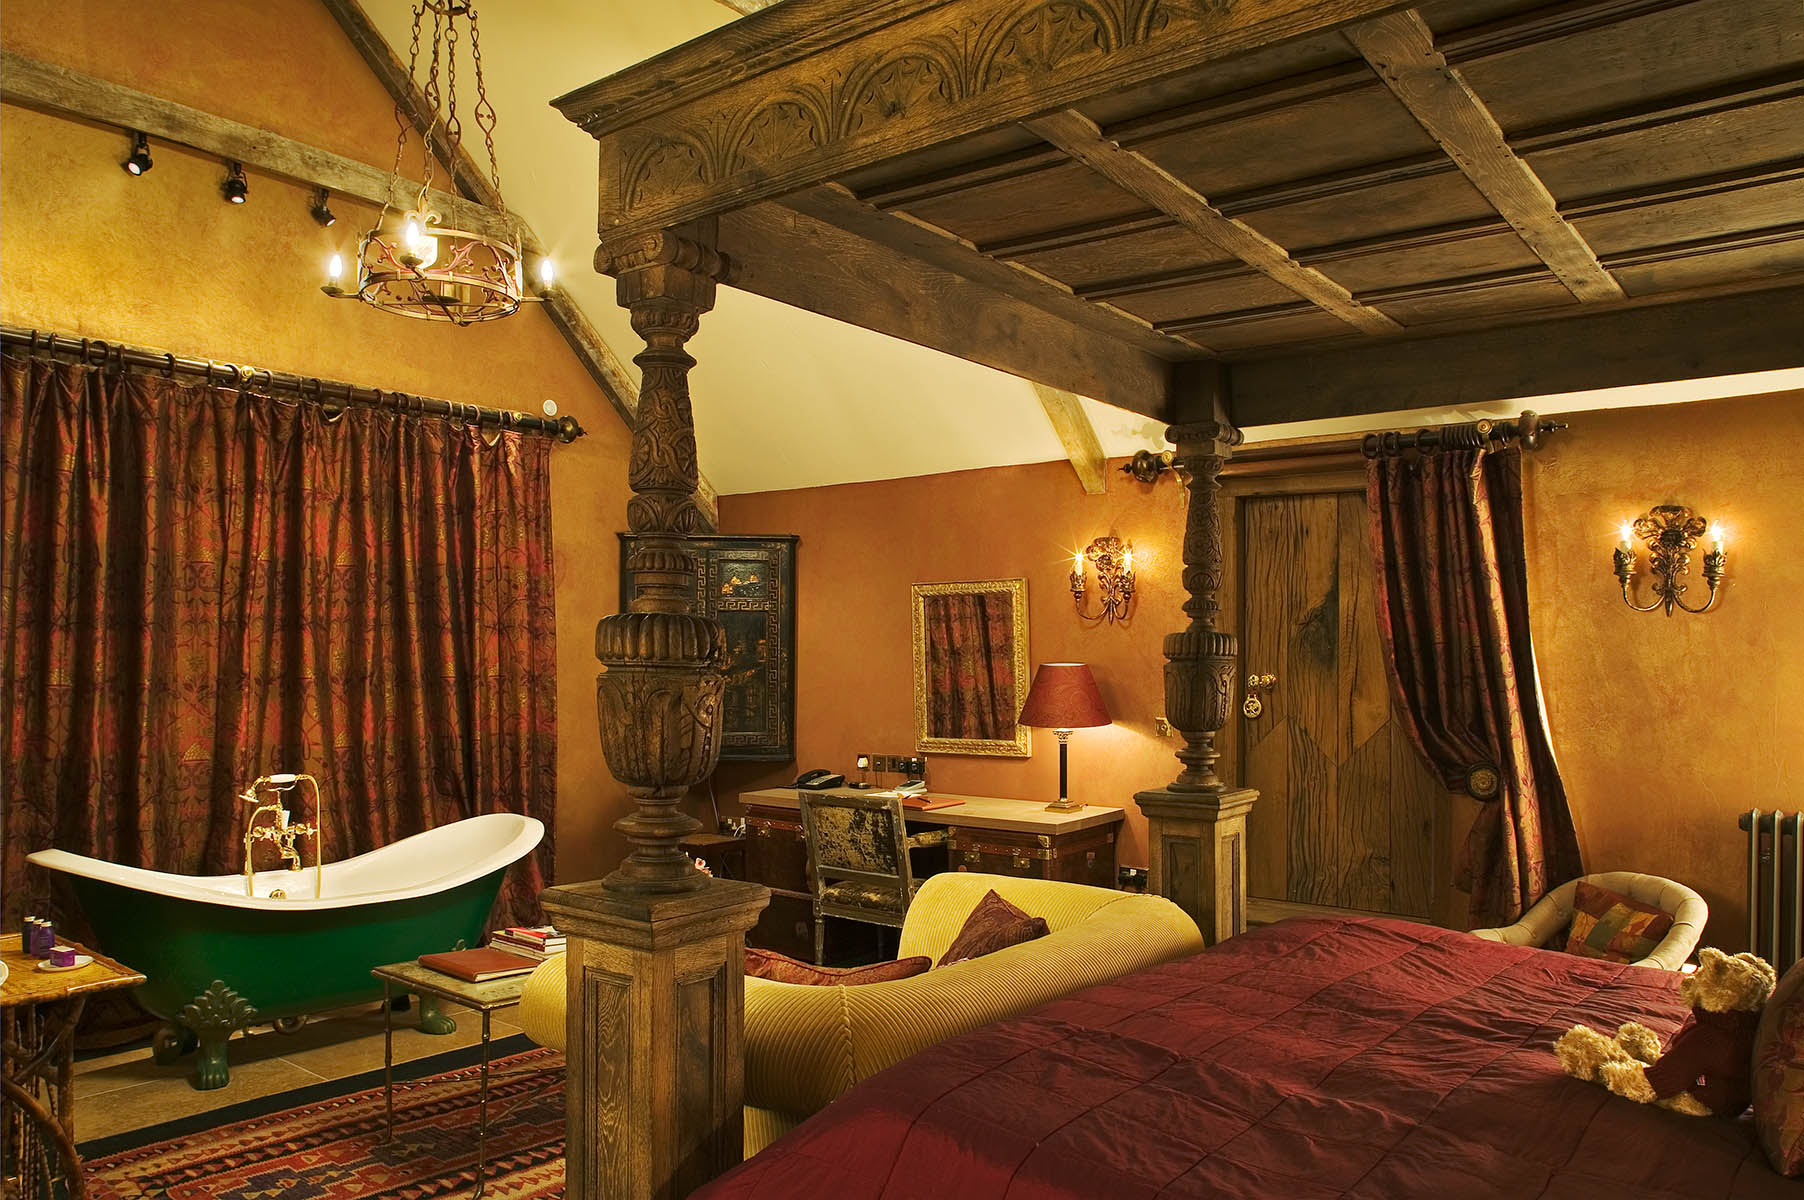 Luxury spa Hotel designed from Elizabethan Manor HouseClient: Lutron